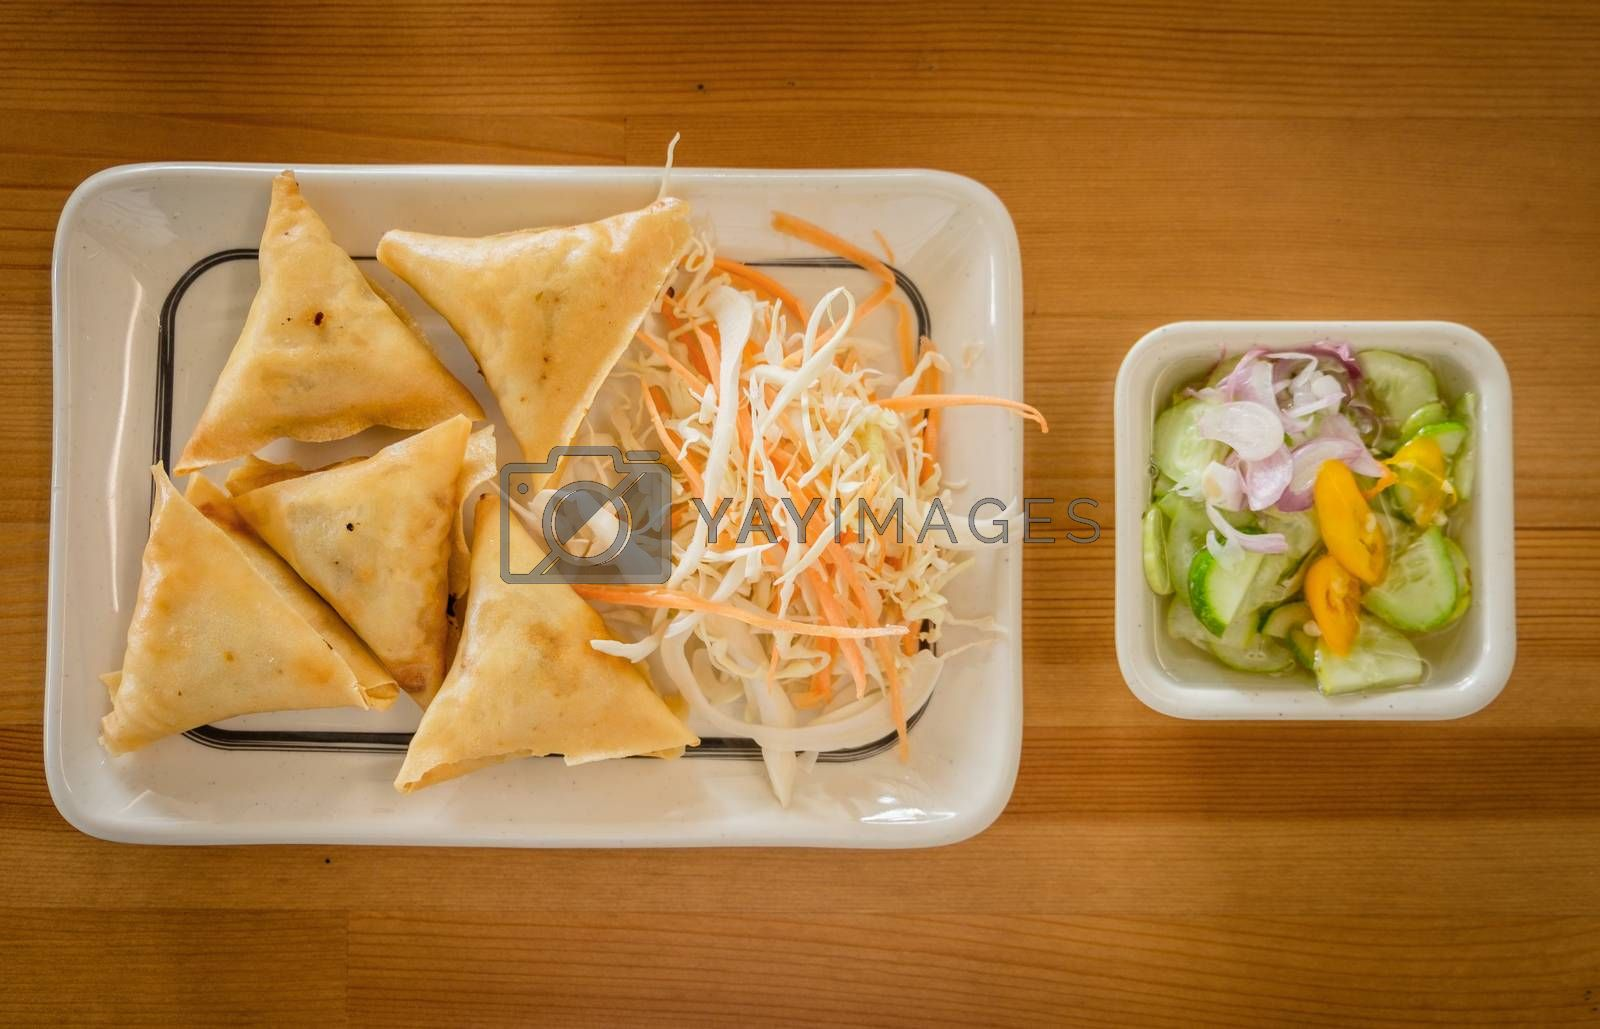 vietnamese food on wood background.